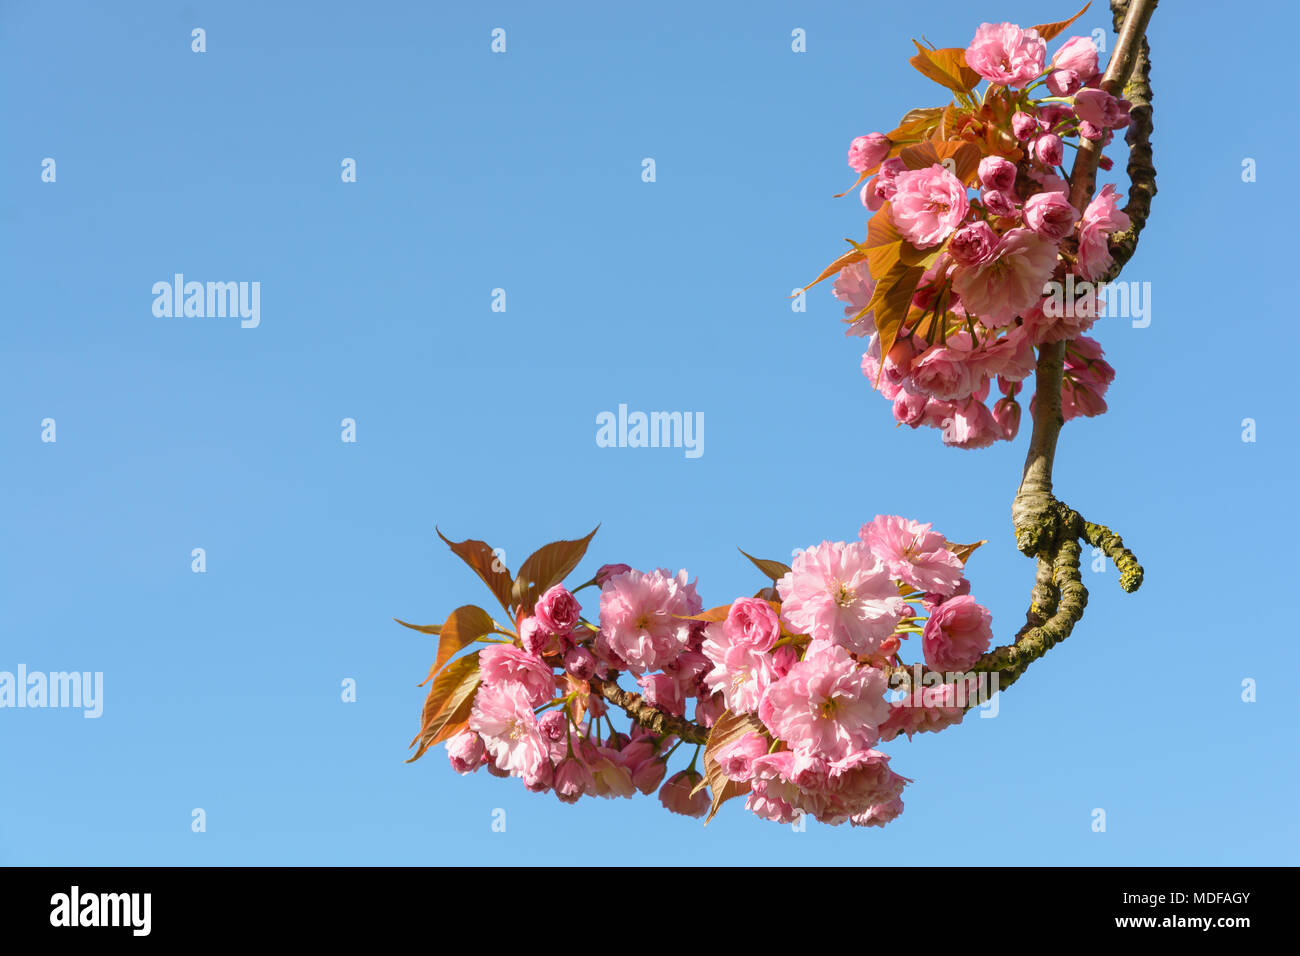 A Branch Of A Blossoming Japanese Cherry Tree With Clusters Of Pink